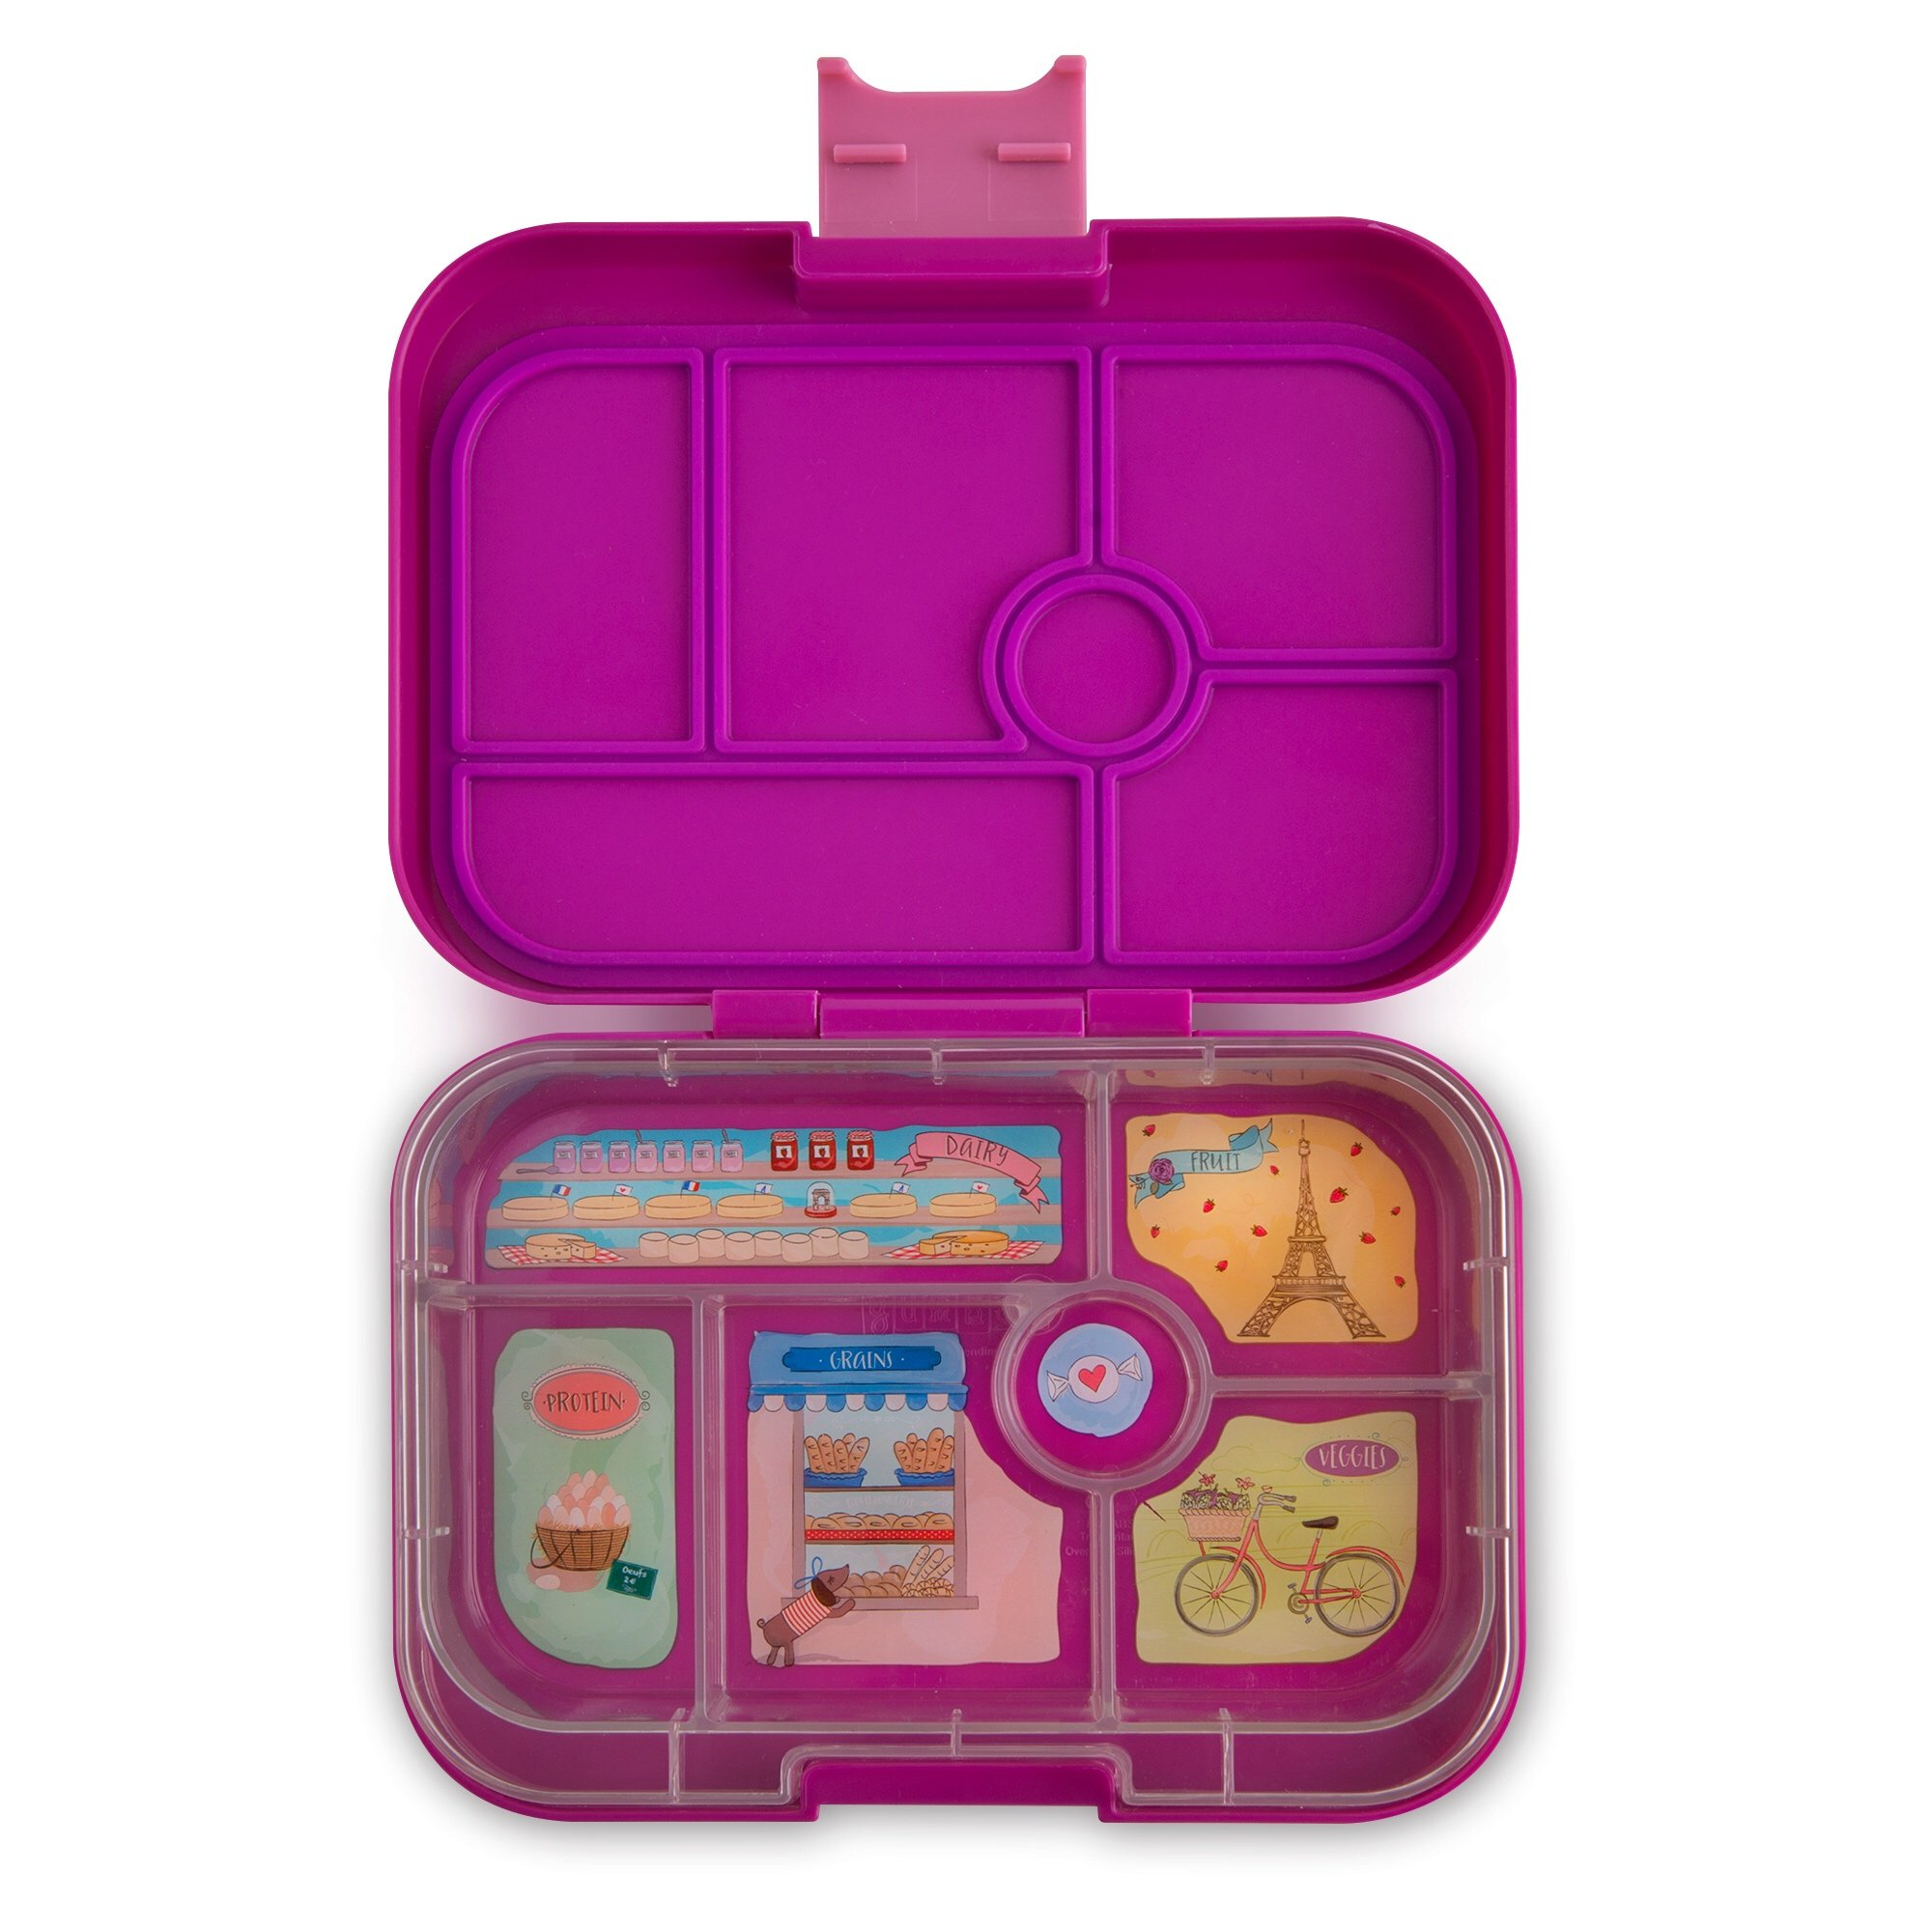 YUMBOX Leakproof Bento Lunch Box Container (Bijoux Purple) for Kids; Bento-style lunch box offers Durable, Leak-proof, On-the-go Meal and Snack Packing